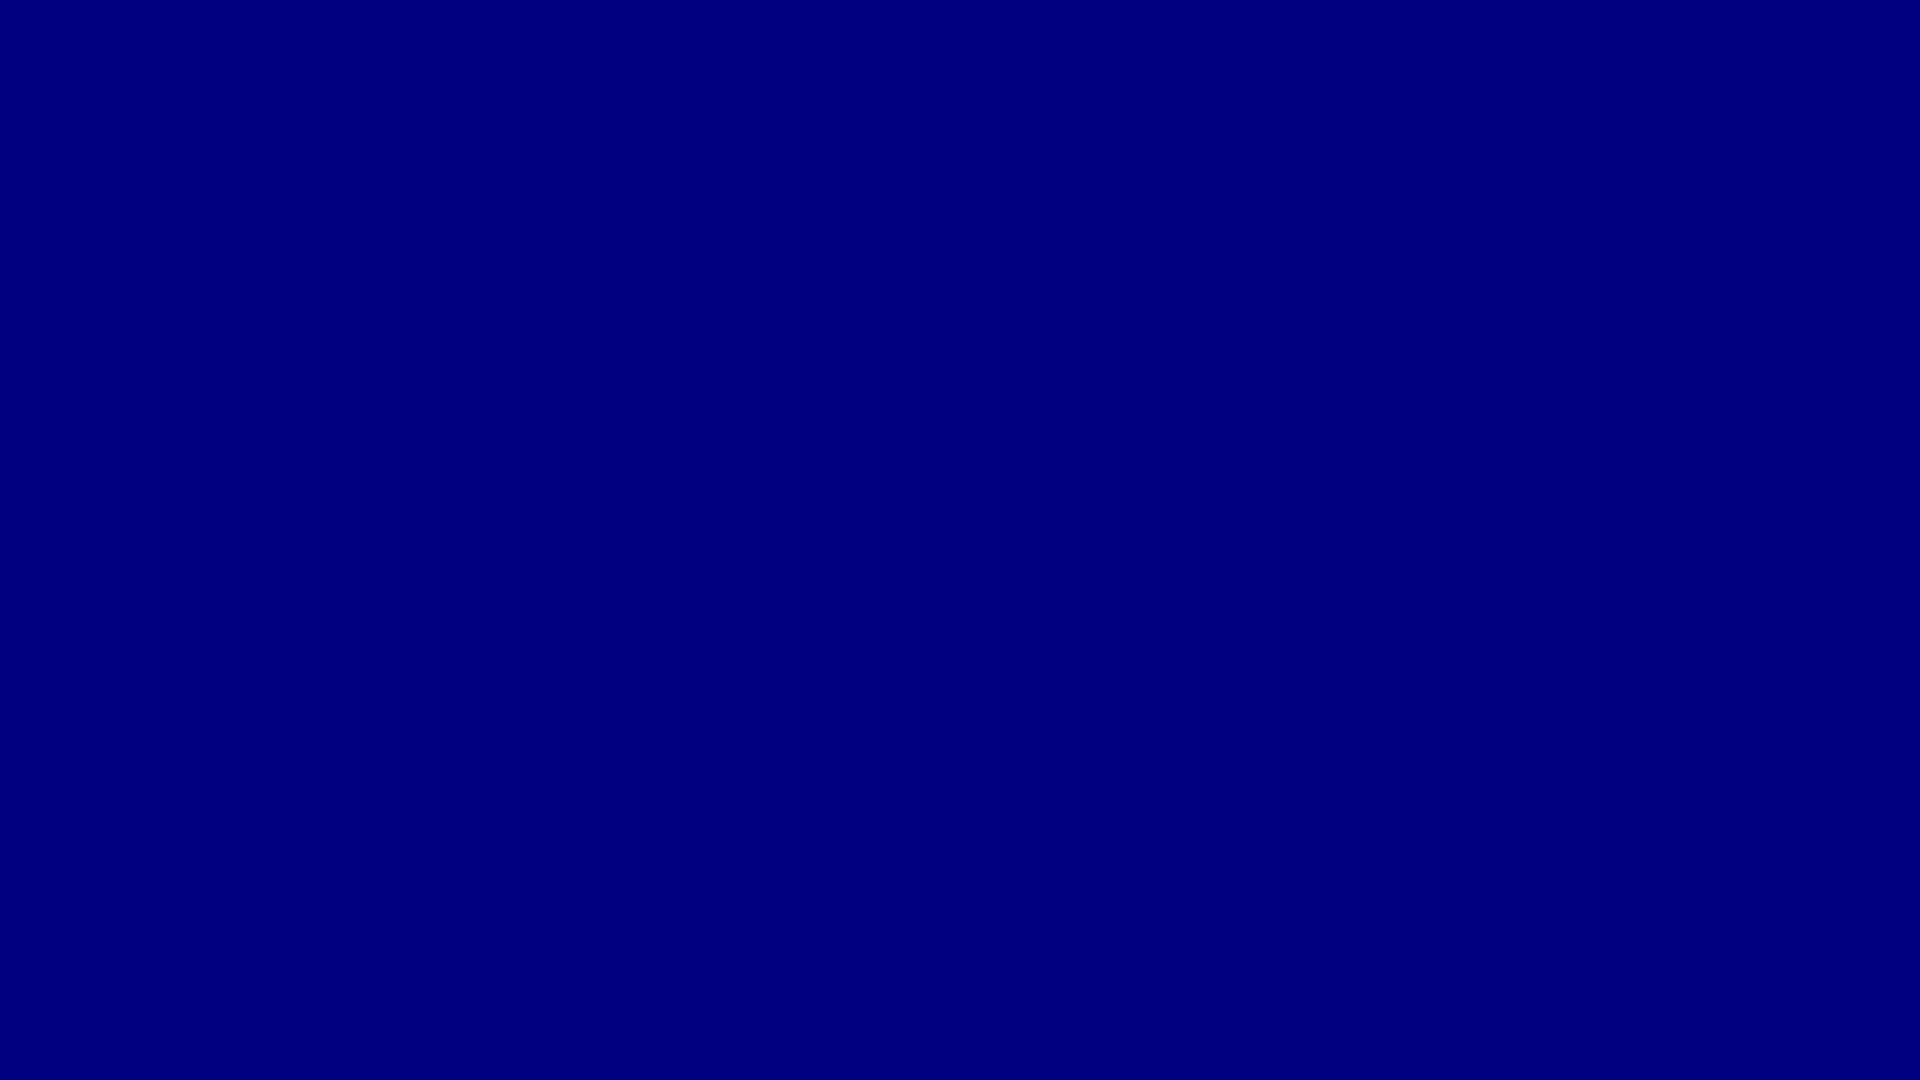 Title Navy Blue Solid Color Background Dimension 1920 X 1080 File Type JPG JPEG